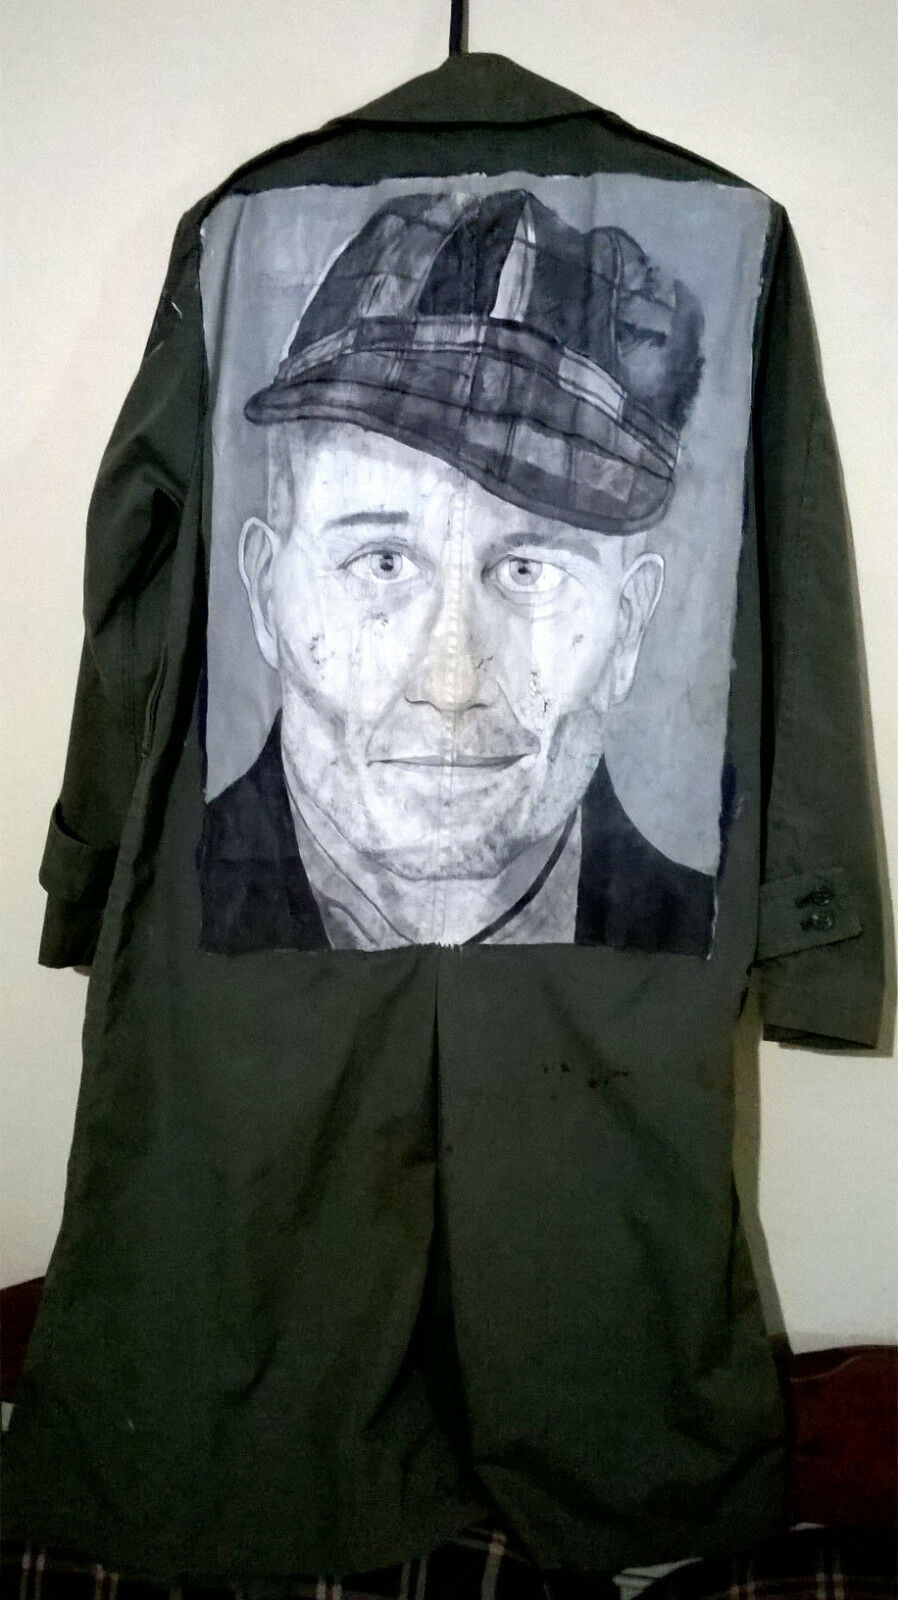 Horror Punk Army Trench Coat True Crime Ed Gein Ghoul Cannibal Misfits Macabre